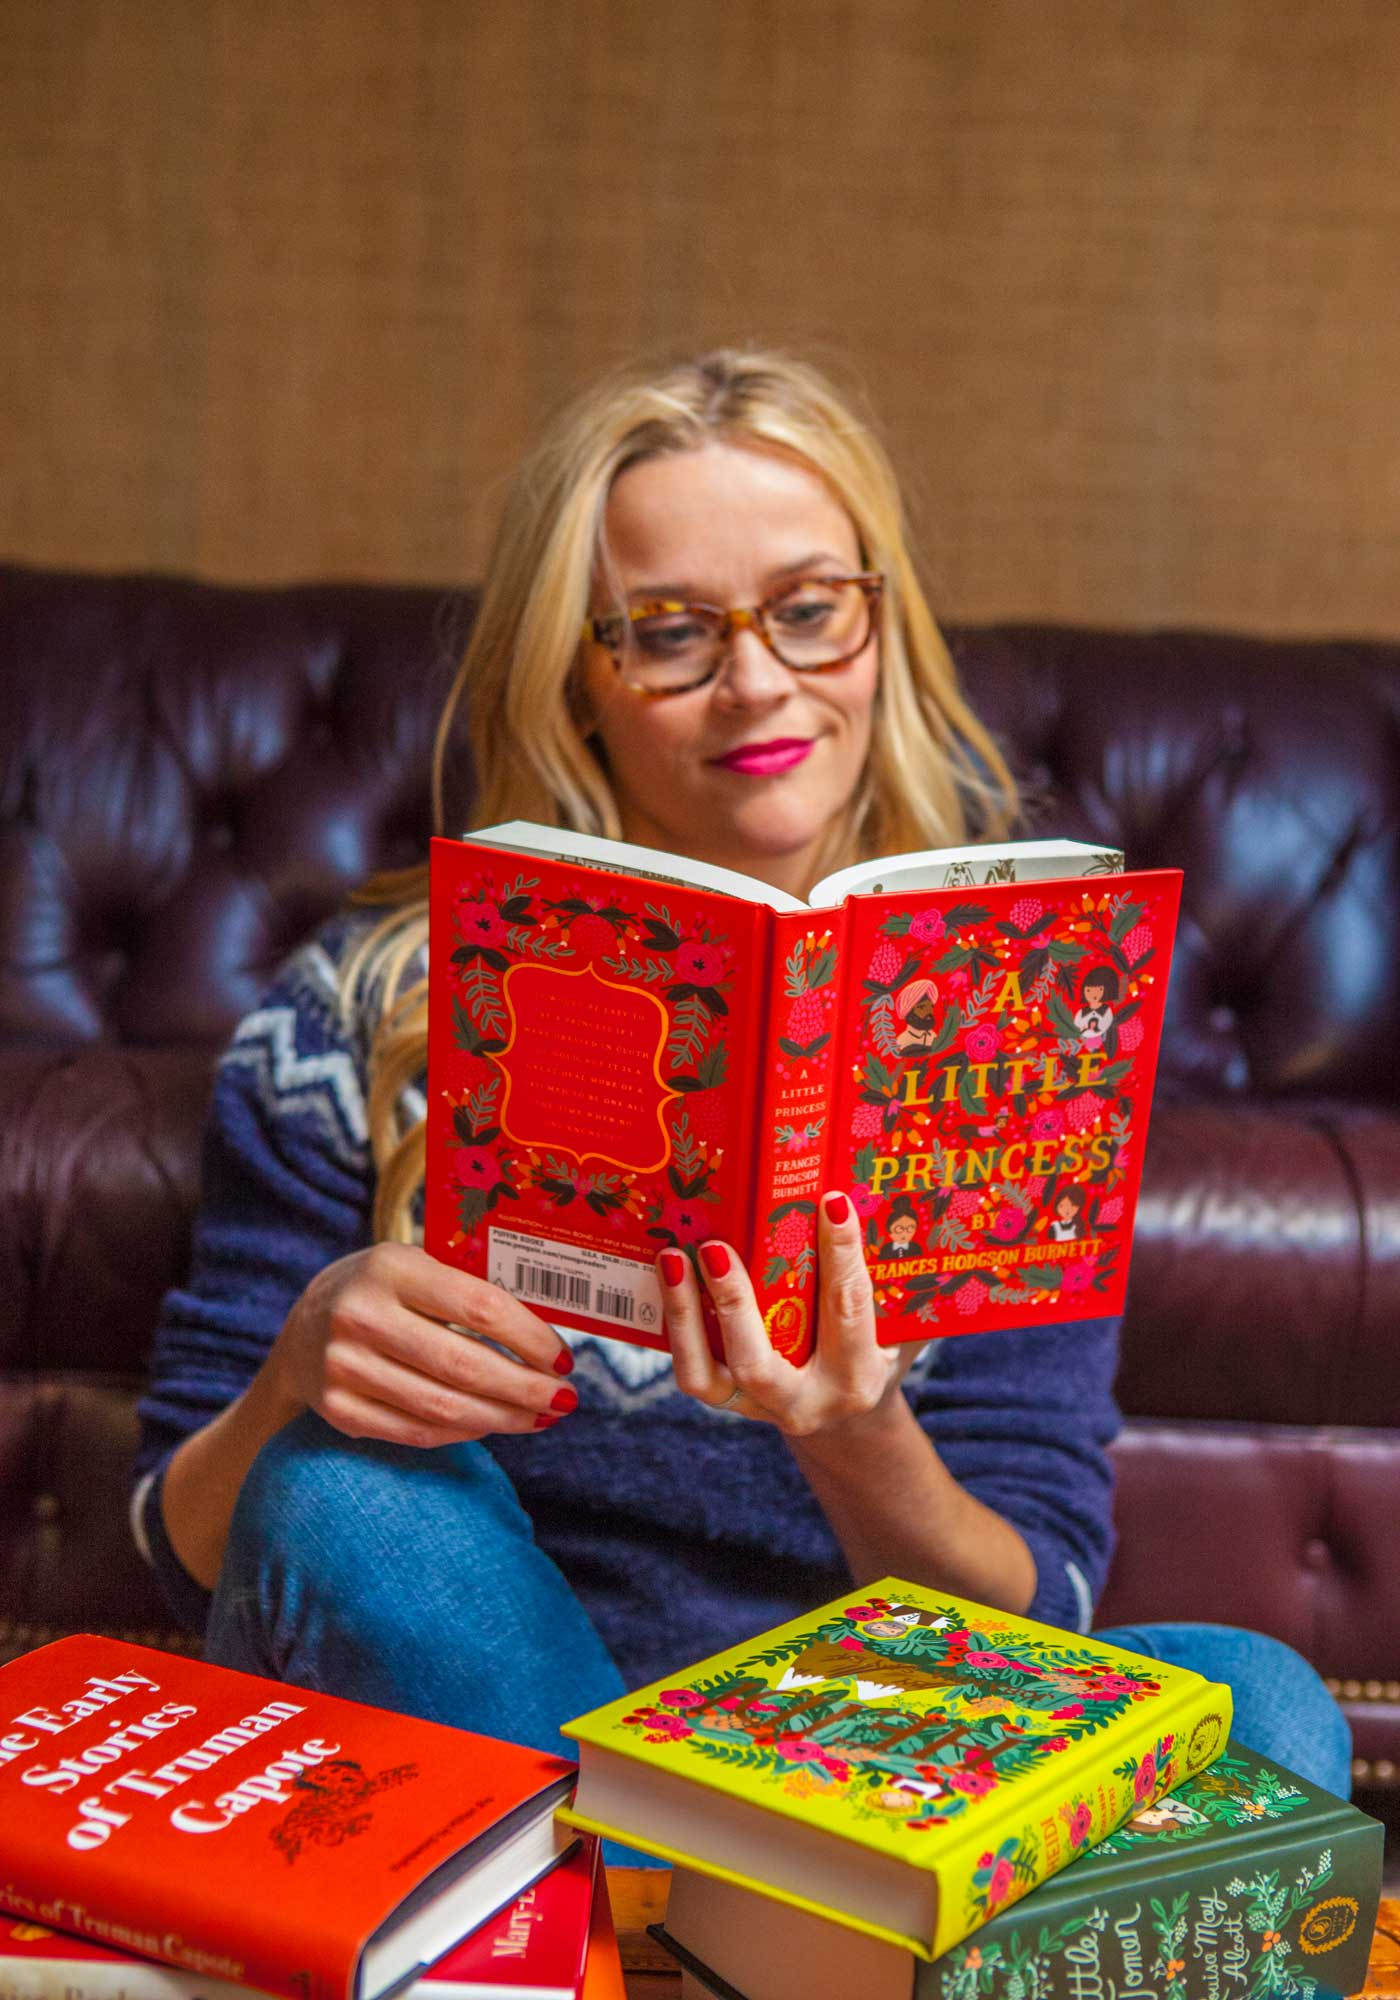 Reese's Book Club - Reese Witherspoon